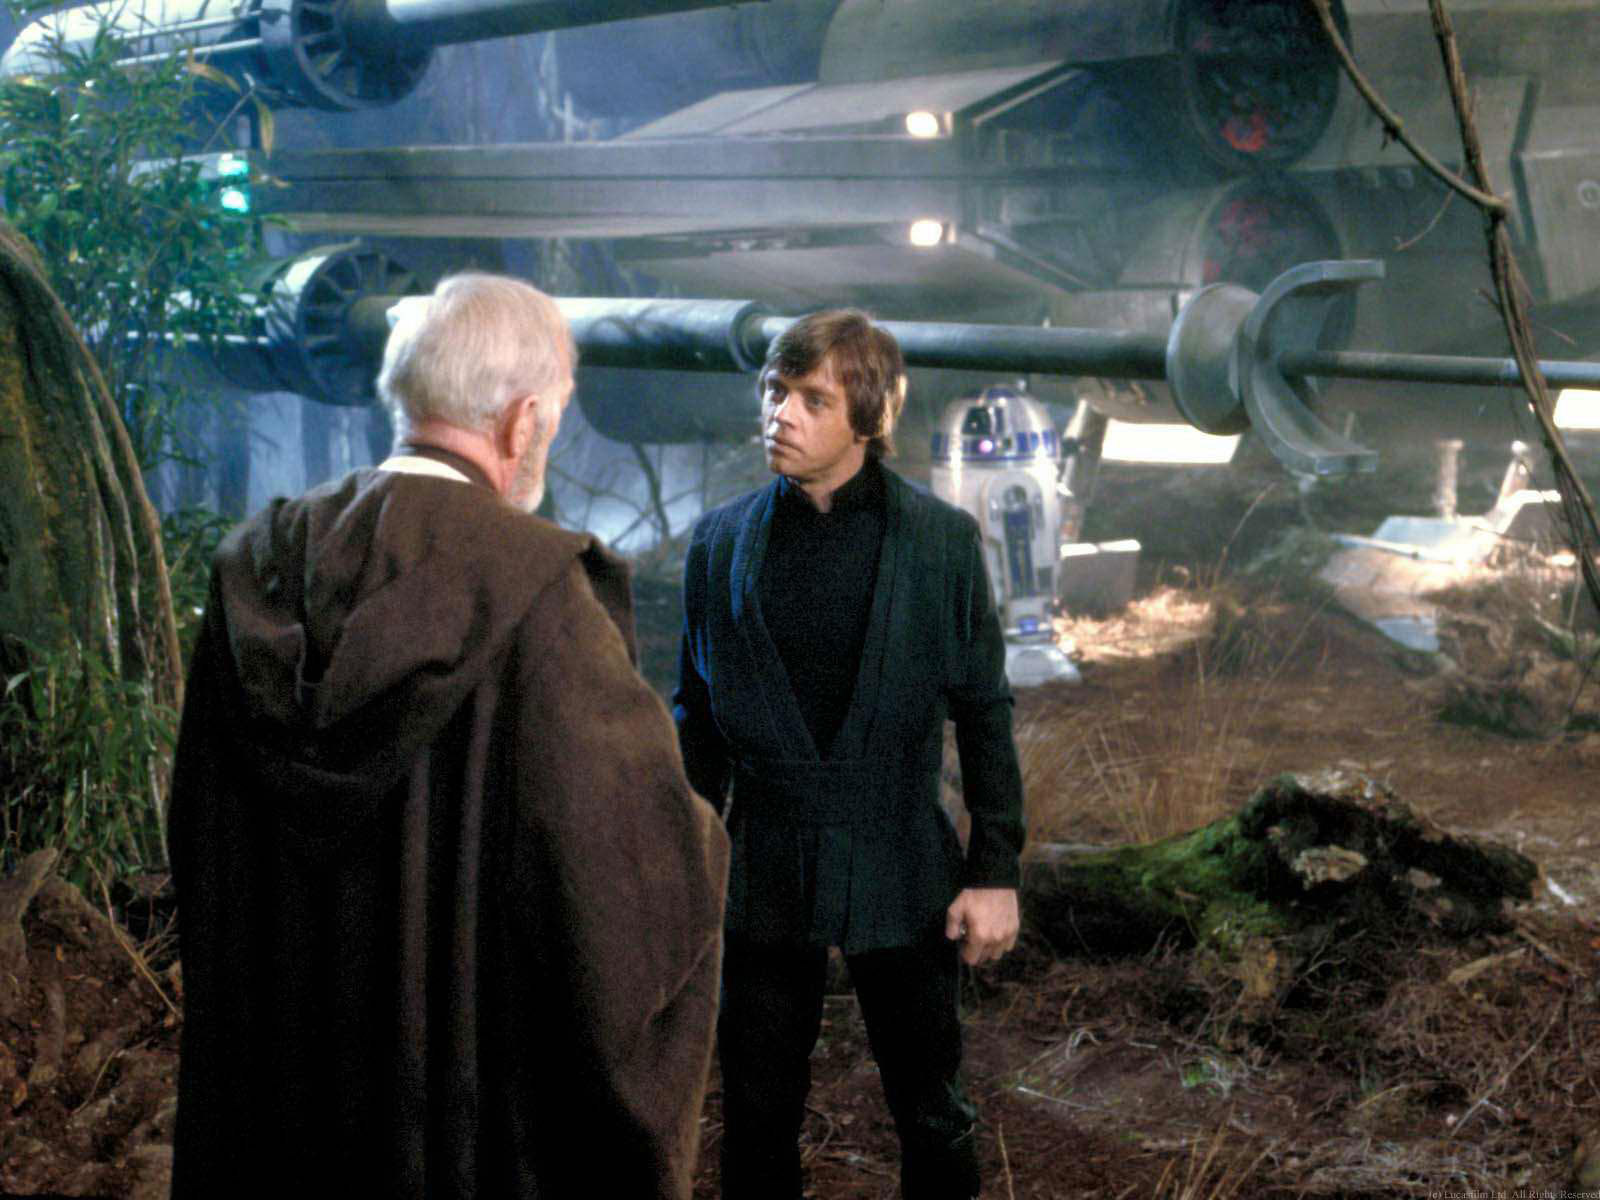 Obi-Wan's spirit encounters Luke on Dagobah in Return of the Jedi in the Star Wars sequel that I'm mentioning for SEO value of Star Wars in the Star Wars mentionings for Star Wars.